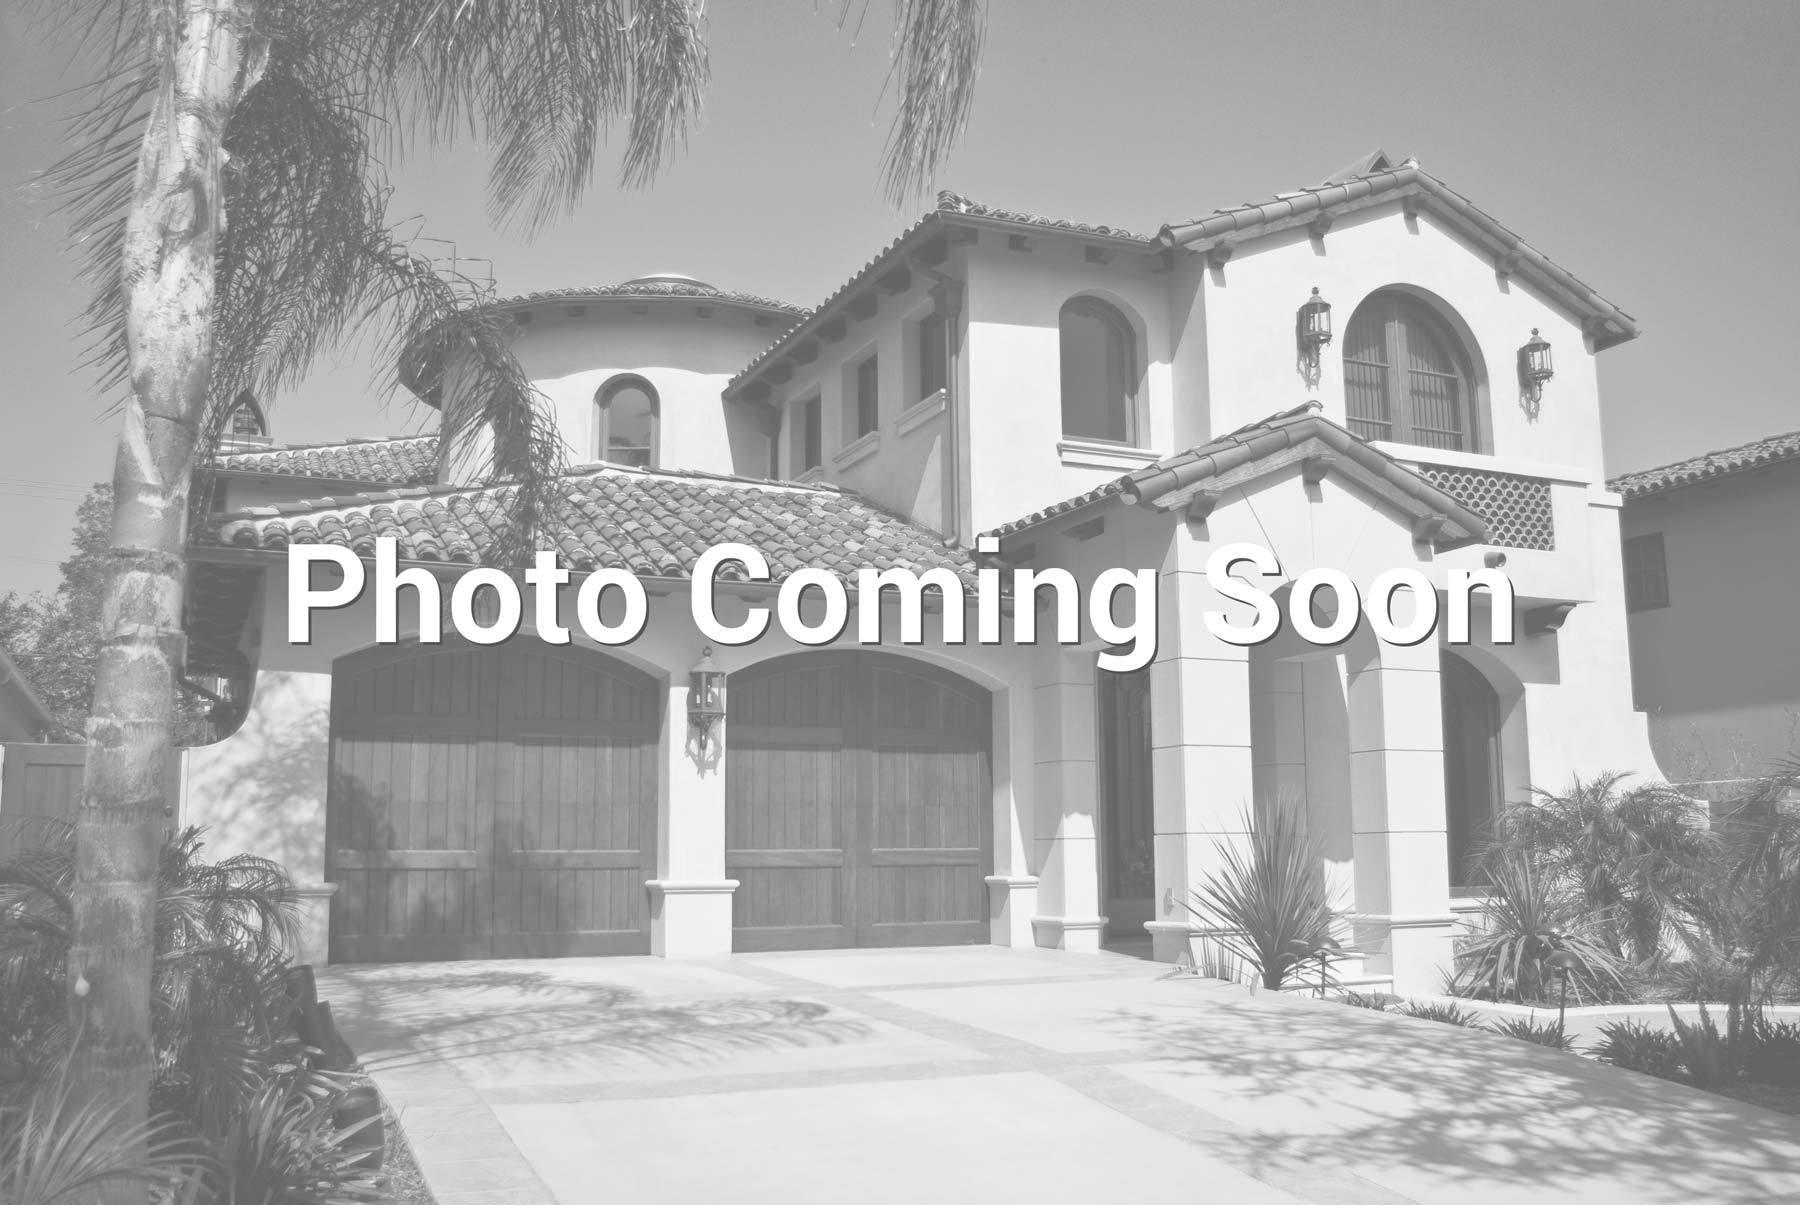 $349,900 - 3Br/2Ba - Home for Sale in Pima Vista Amd Lot 1-185 Tr A-m, Scottsdale